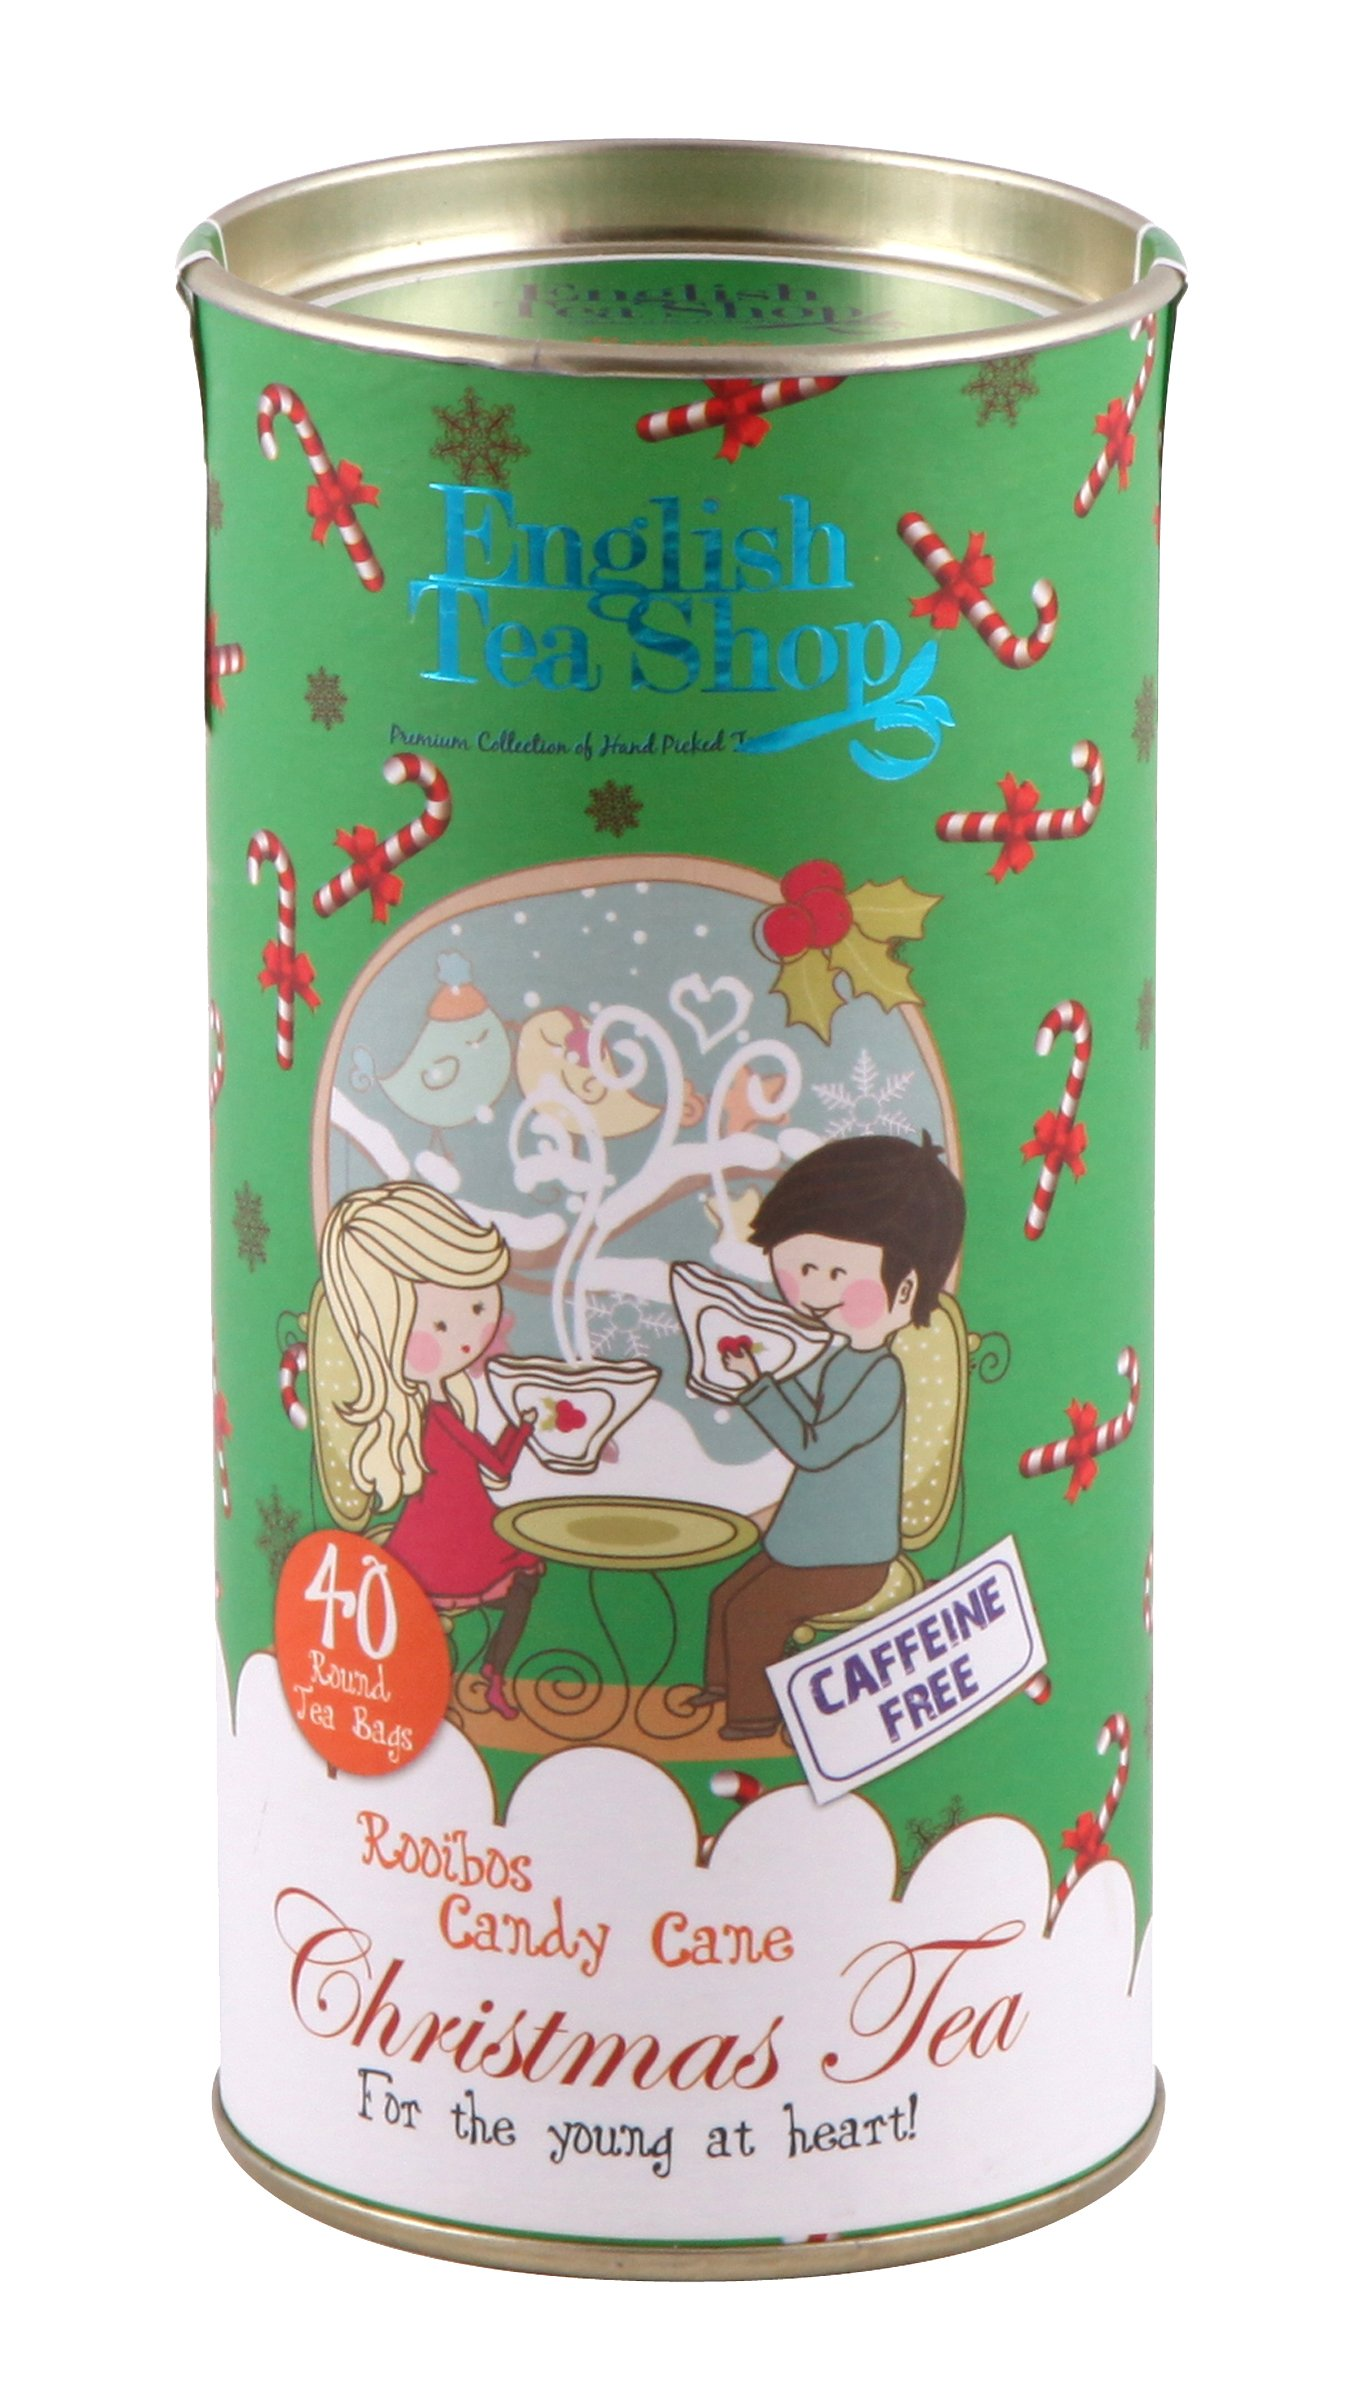 English-Tea-Shop-Christmas-Tea-Organic-Rooibos-Candy-Cane-60g